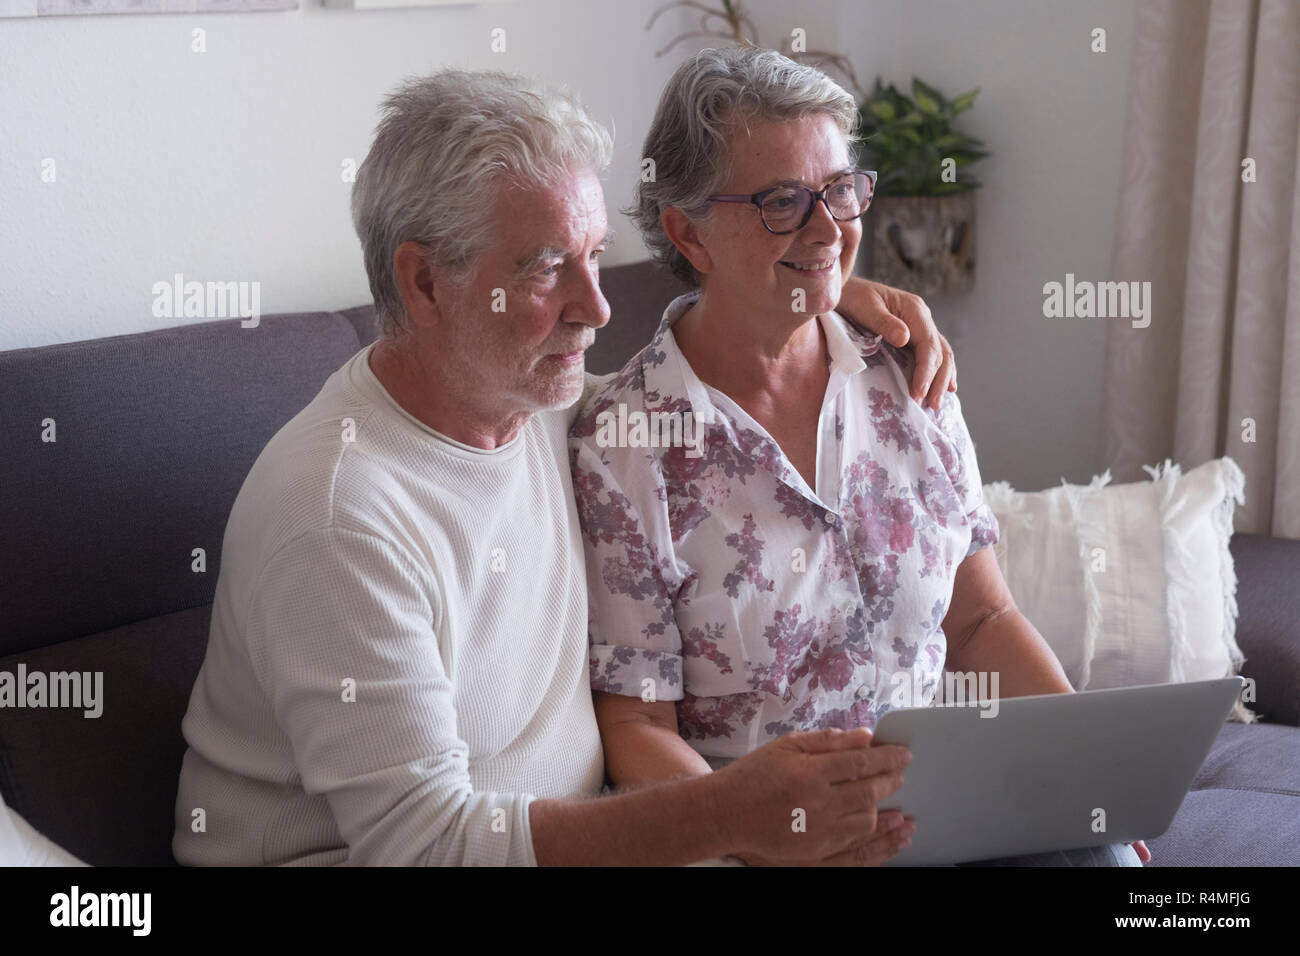 Senior couple at home websurfing on laptop computer - woman smiling and man serious both looking for something on internet and use a notebook sit down - Stock Image